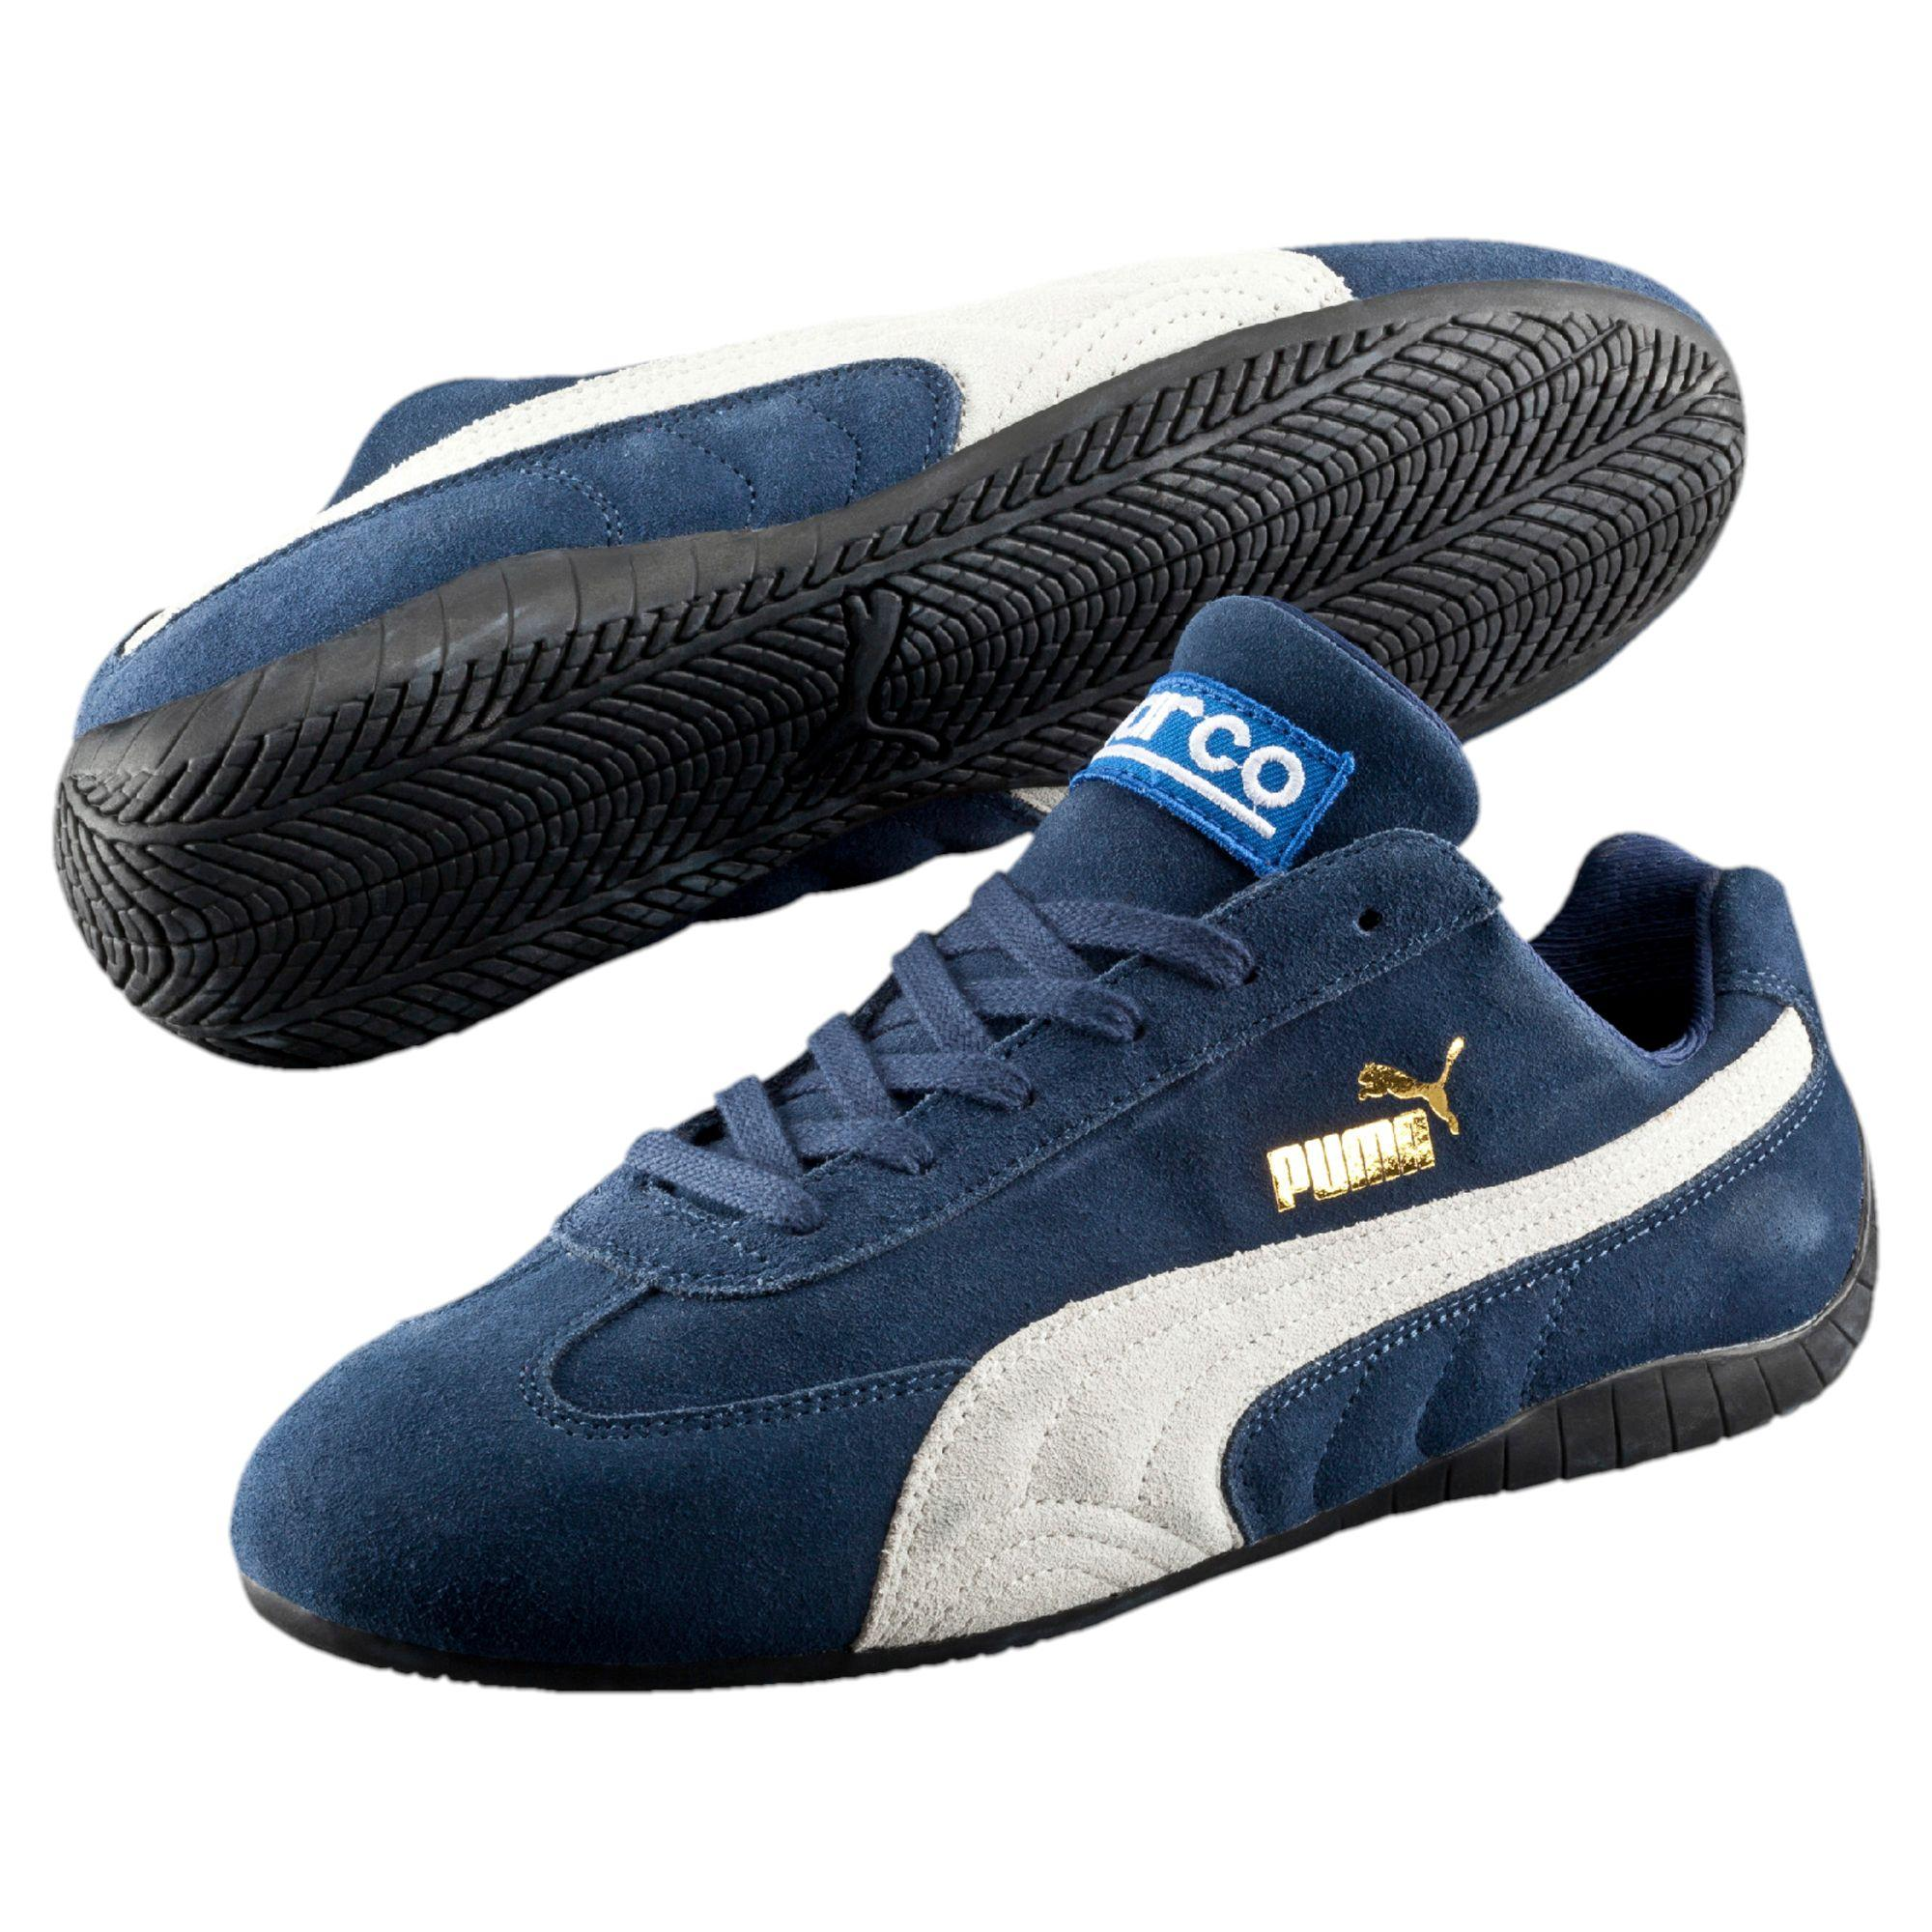 ... best price lyst puma speed cat sparco shoes in blue for men a4ab0 156e1  ... 4185a45d8